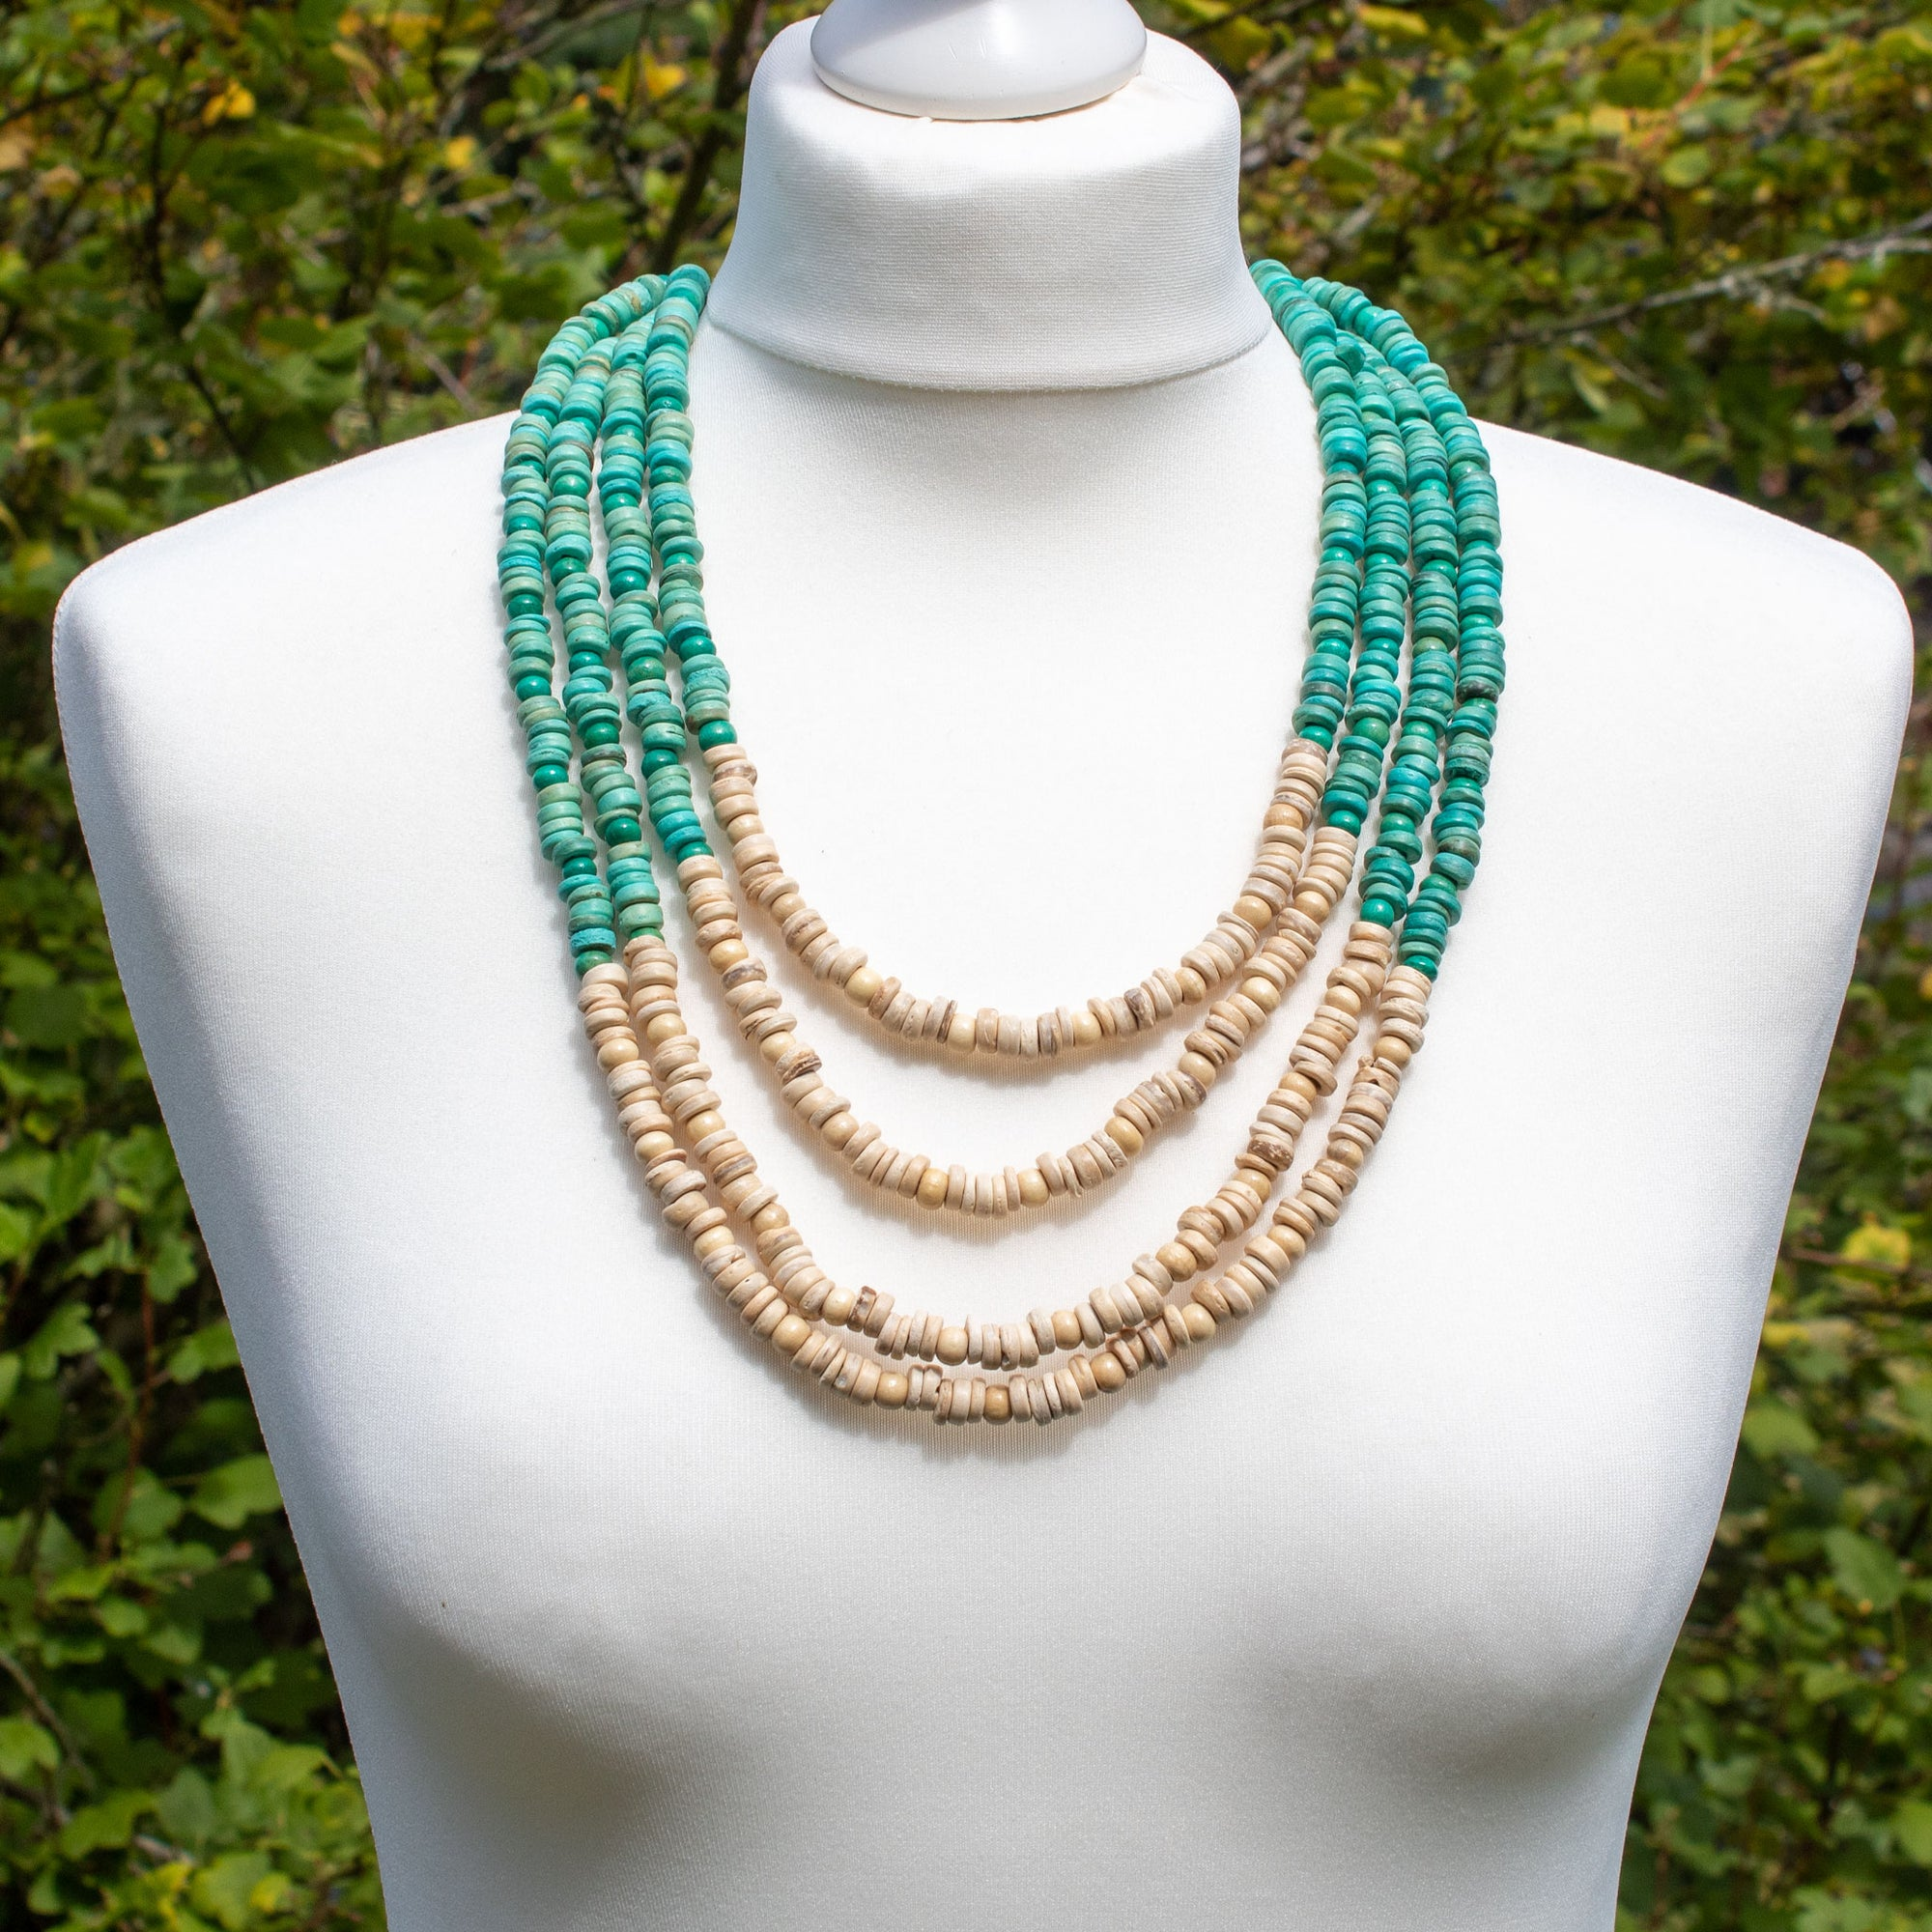 Cream & Turquoise Wooden Bead Multi-strand Necklace | Necklace - The Naughty Shrew